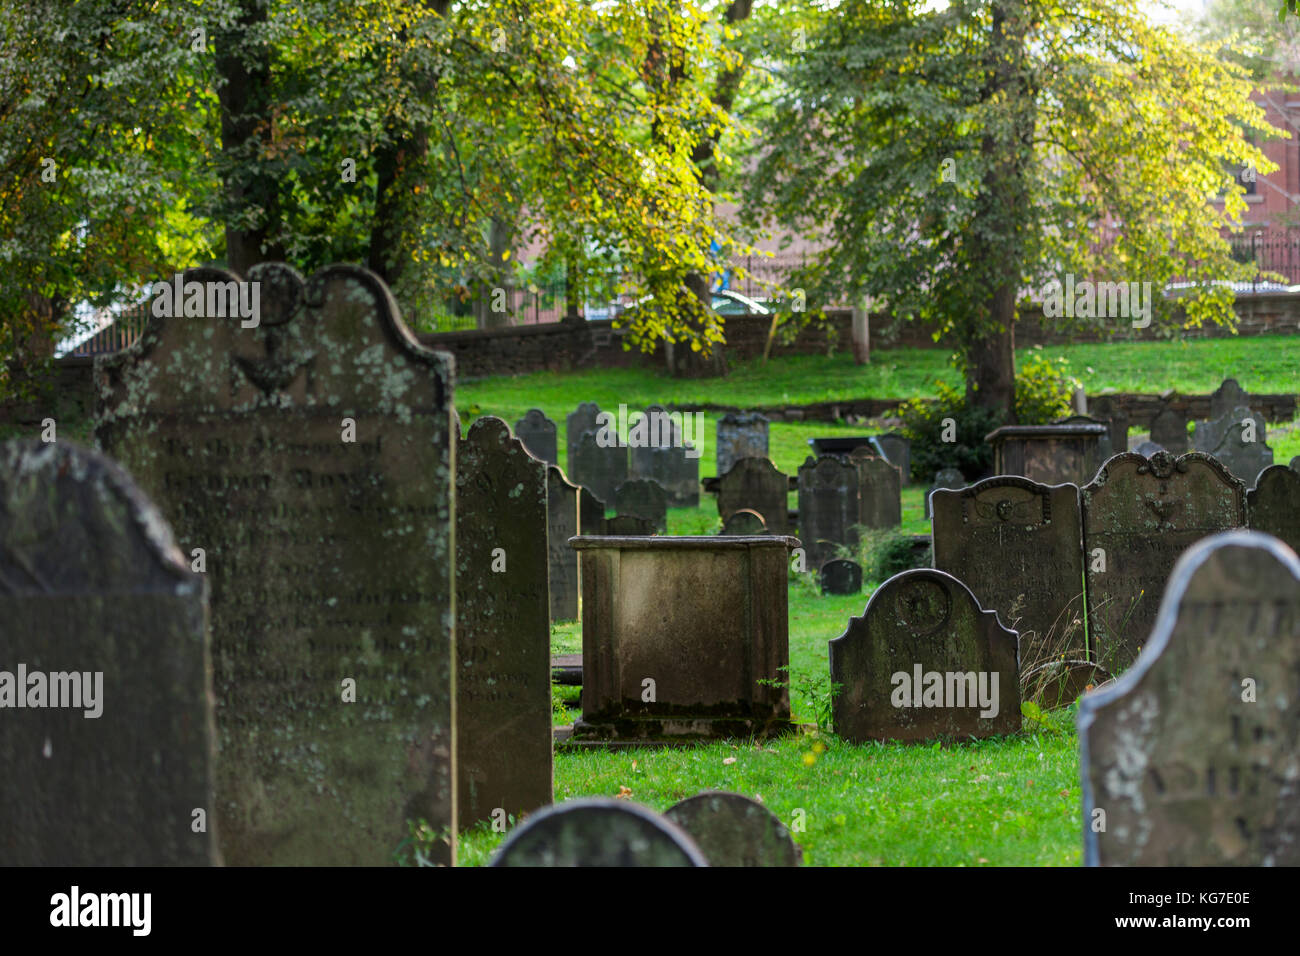 Halifax, Canada - August 29, 2017: The Old Burying Ground opened in 1749 is a National Historic Site of Canada and - Stock Image